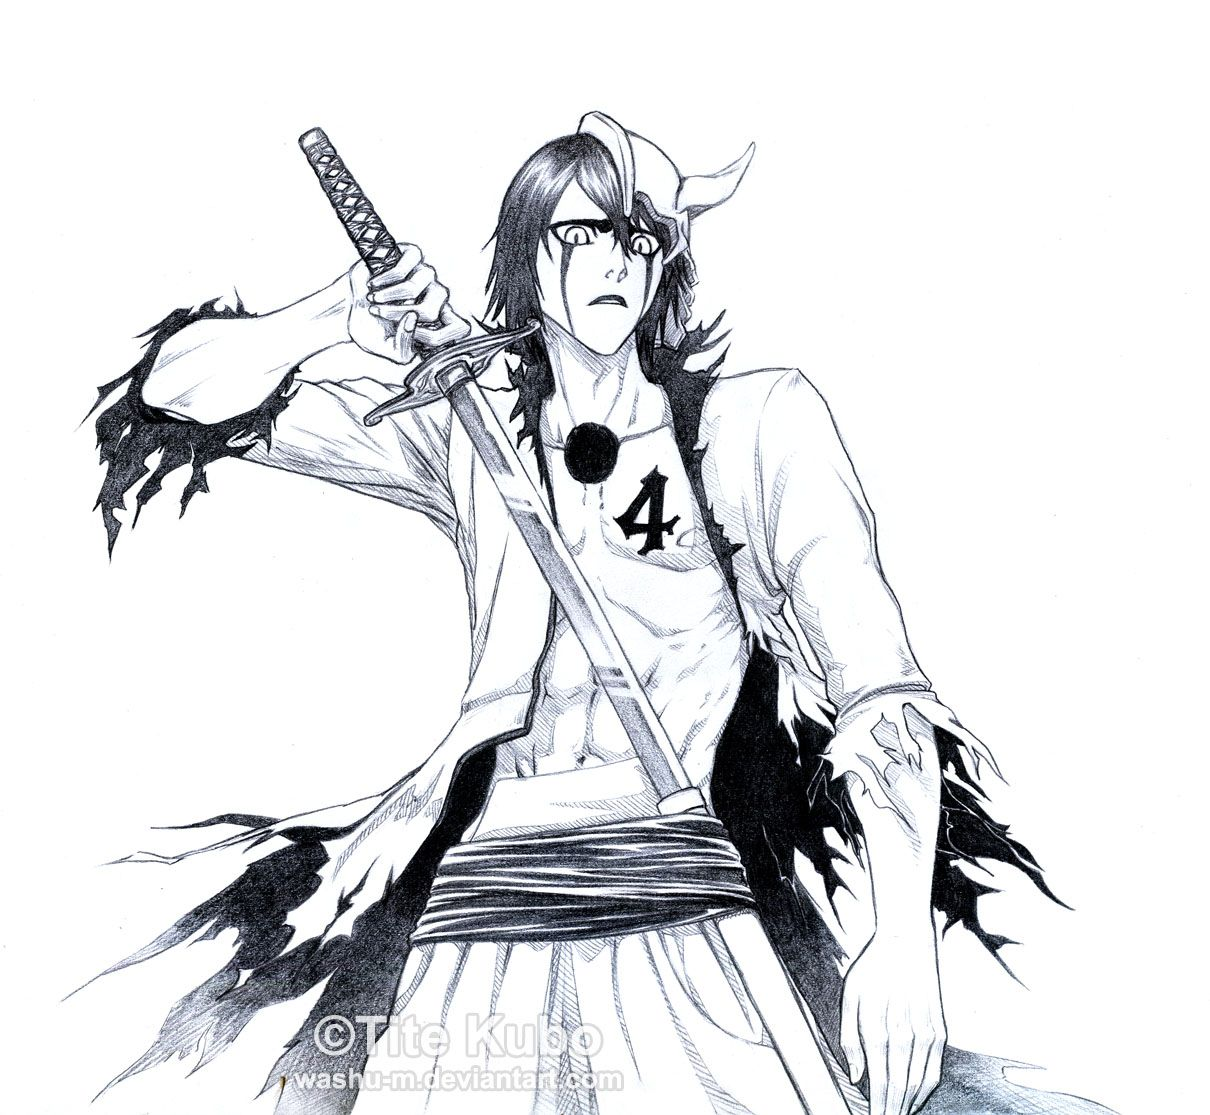 BLEACH - ULQUIORRA - Get Lost by Washu-M.deviantart.com on @deviantART - Bleach © Kubo Tite